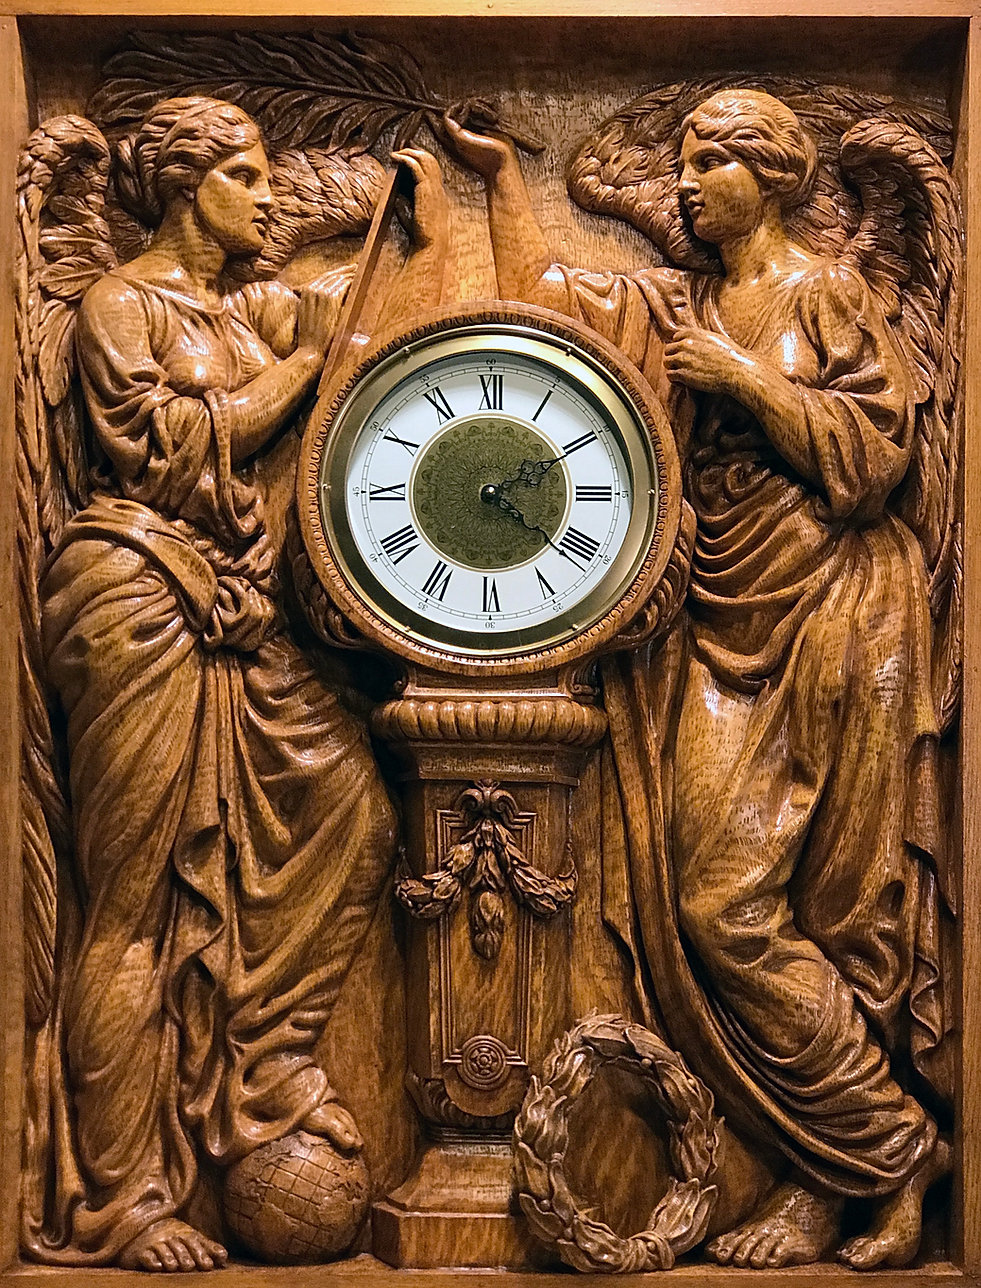 """Honor & Glory Crowning Time"" recreated clock by Titanic sculptor Alan St. George"